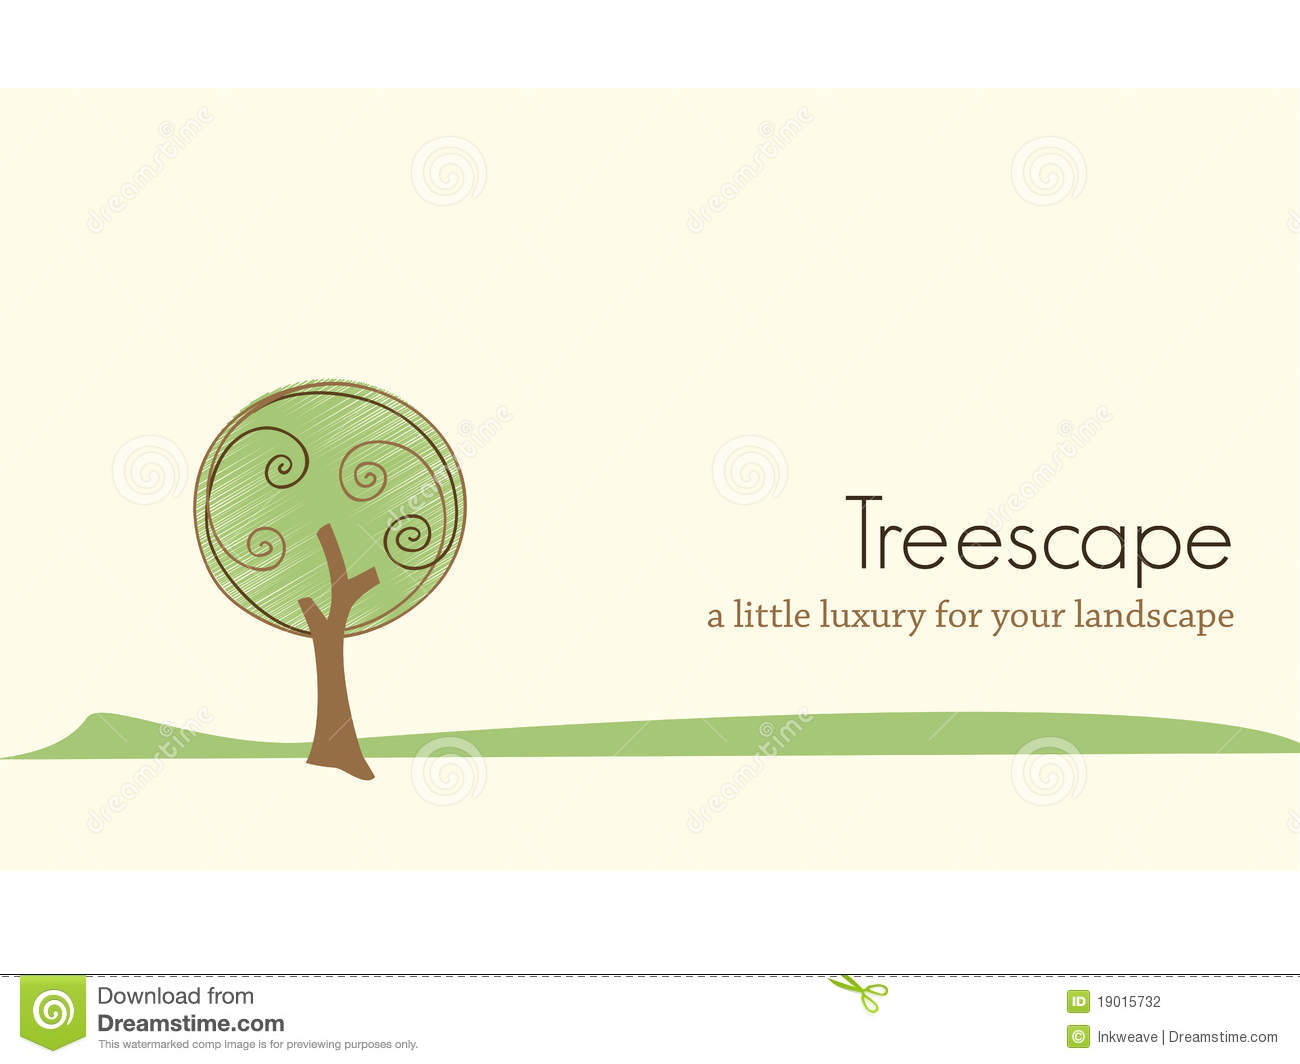 Rolland Asley: Landscaping business cards samples